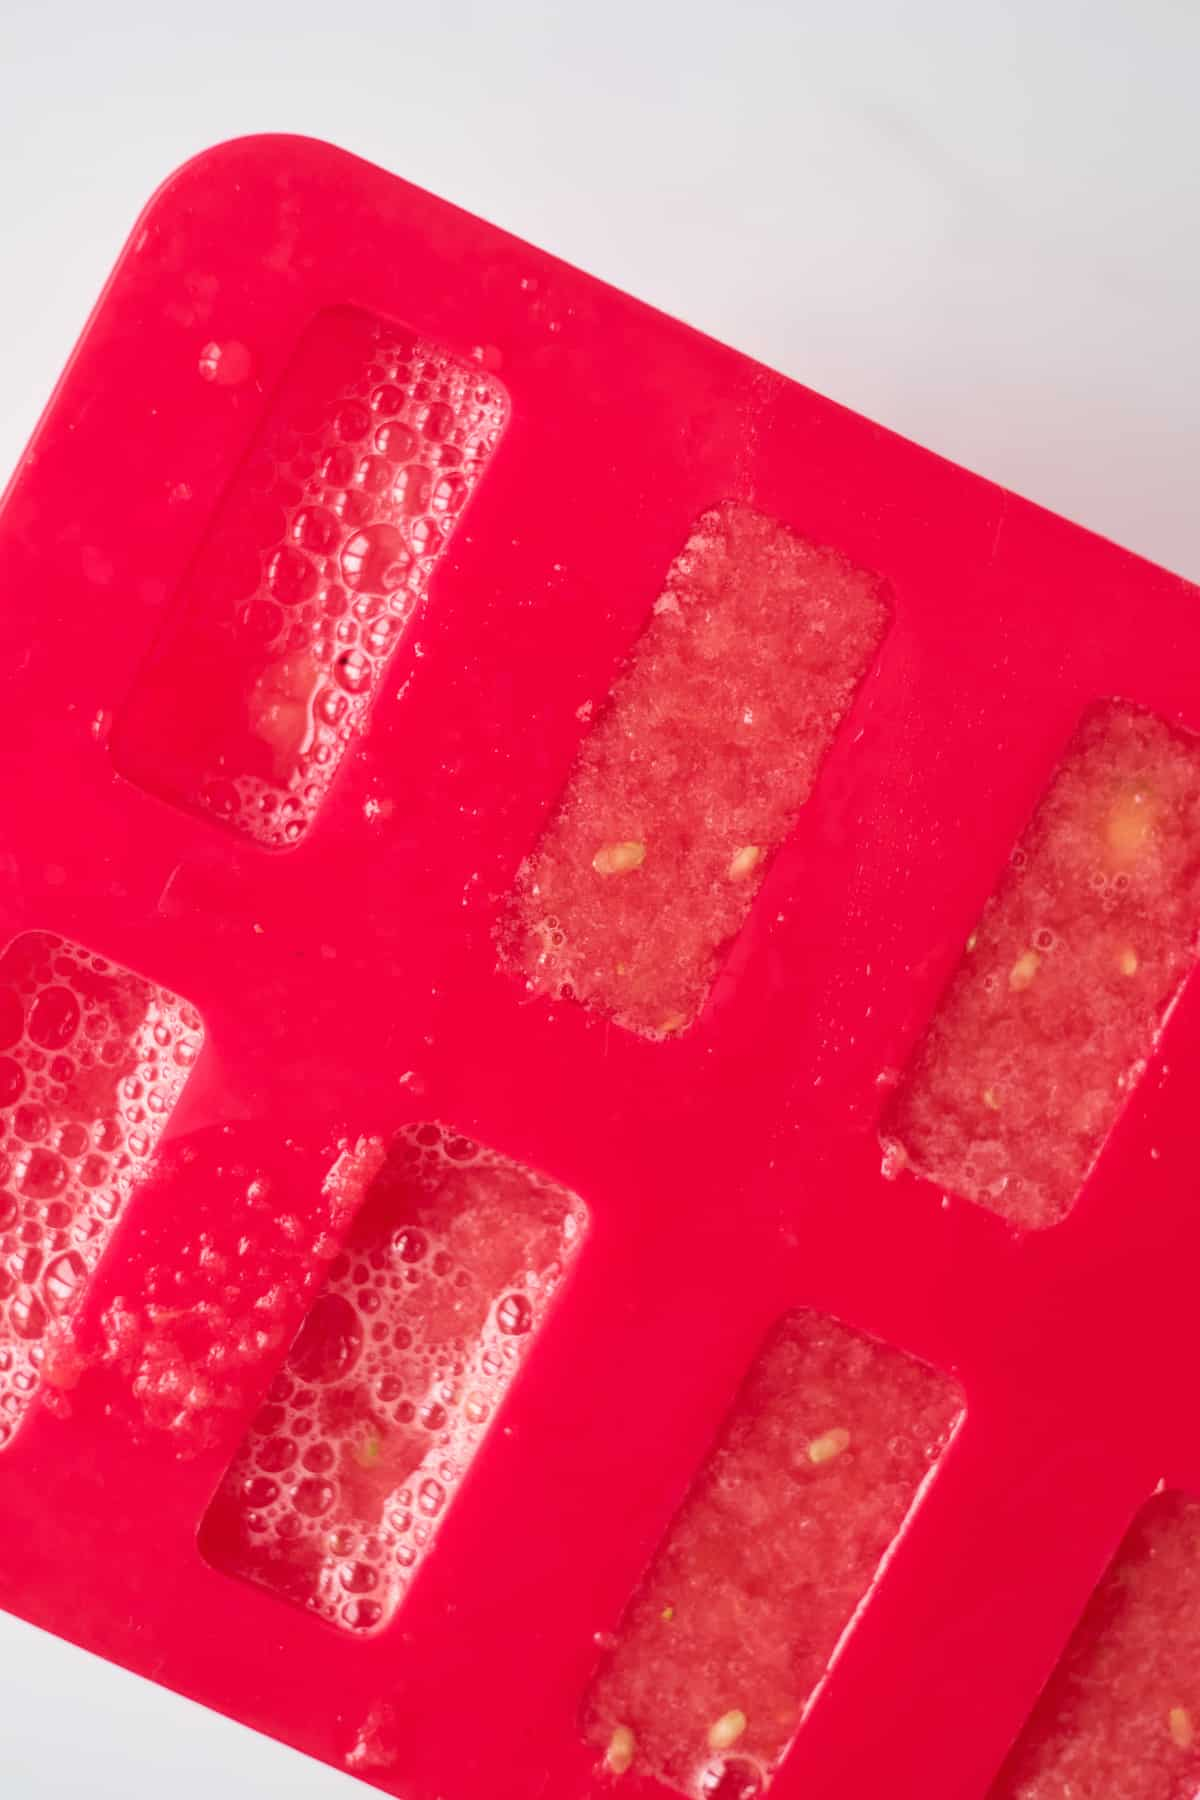 close up view of the mexican popsicles inside the mold